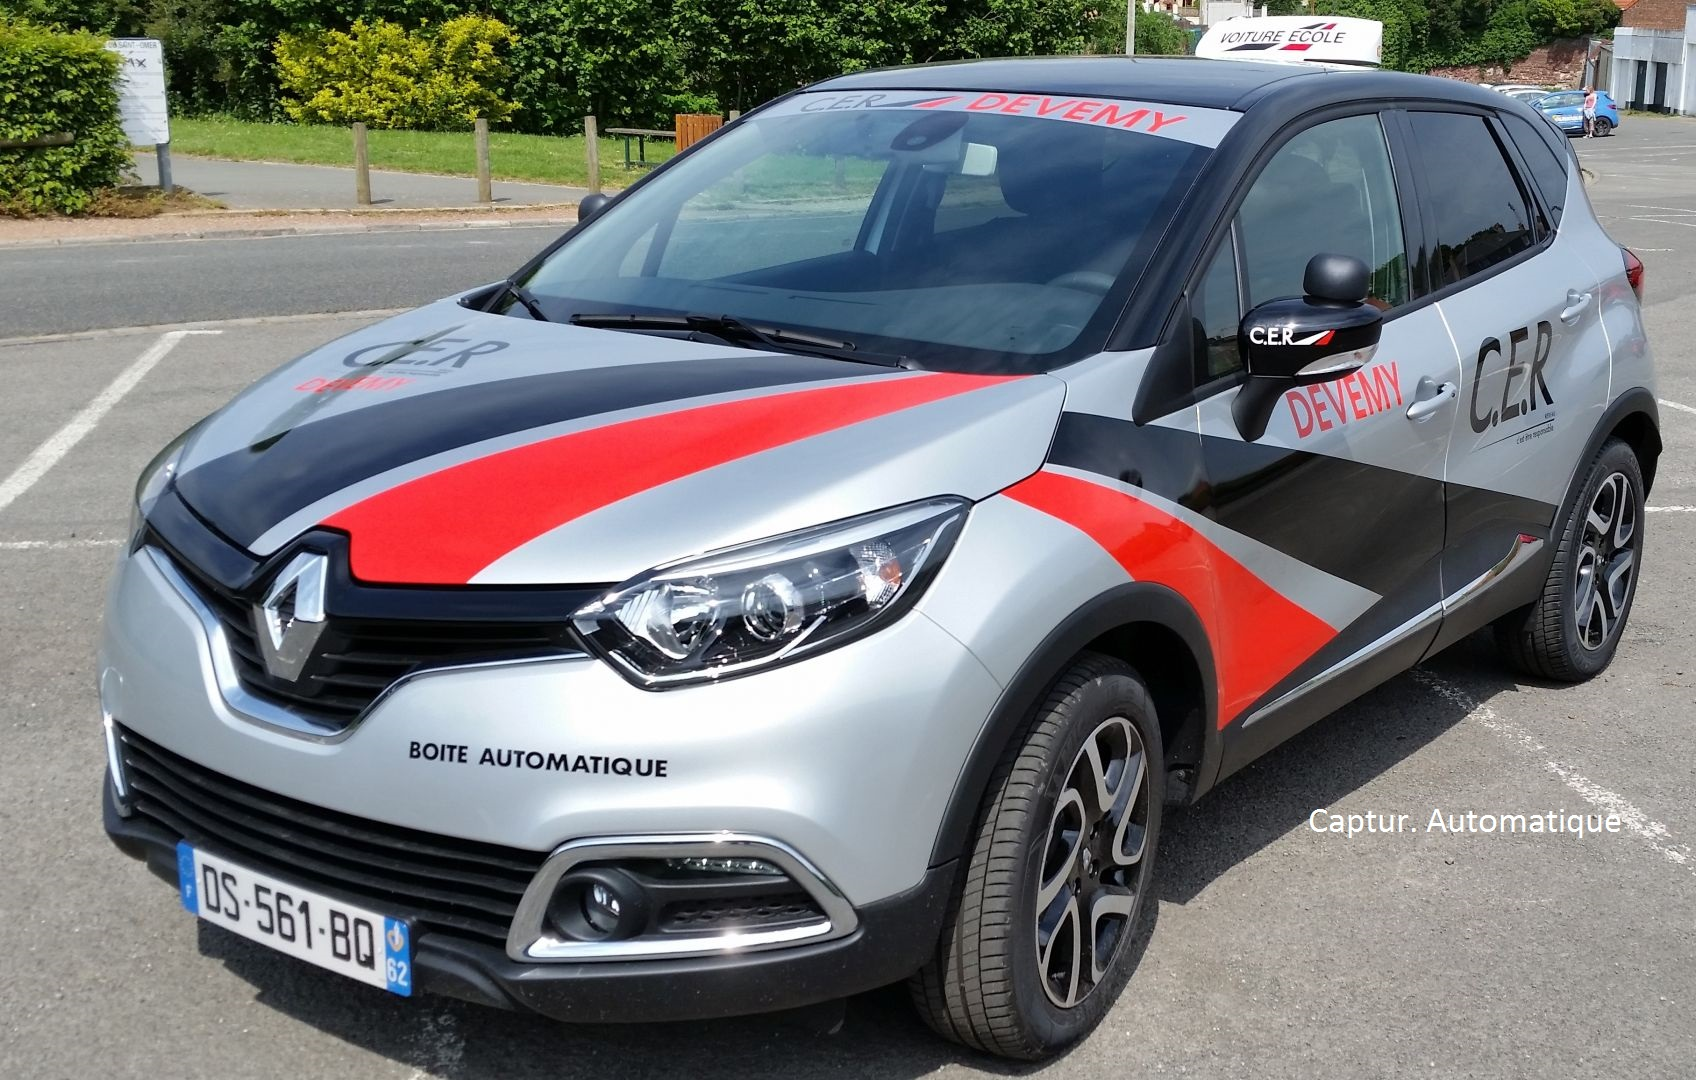 Captur. Automatique